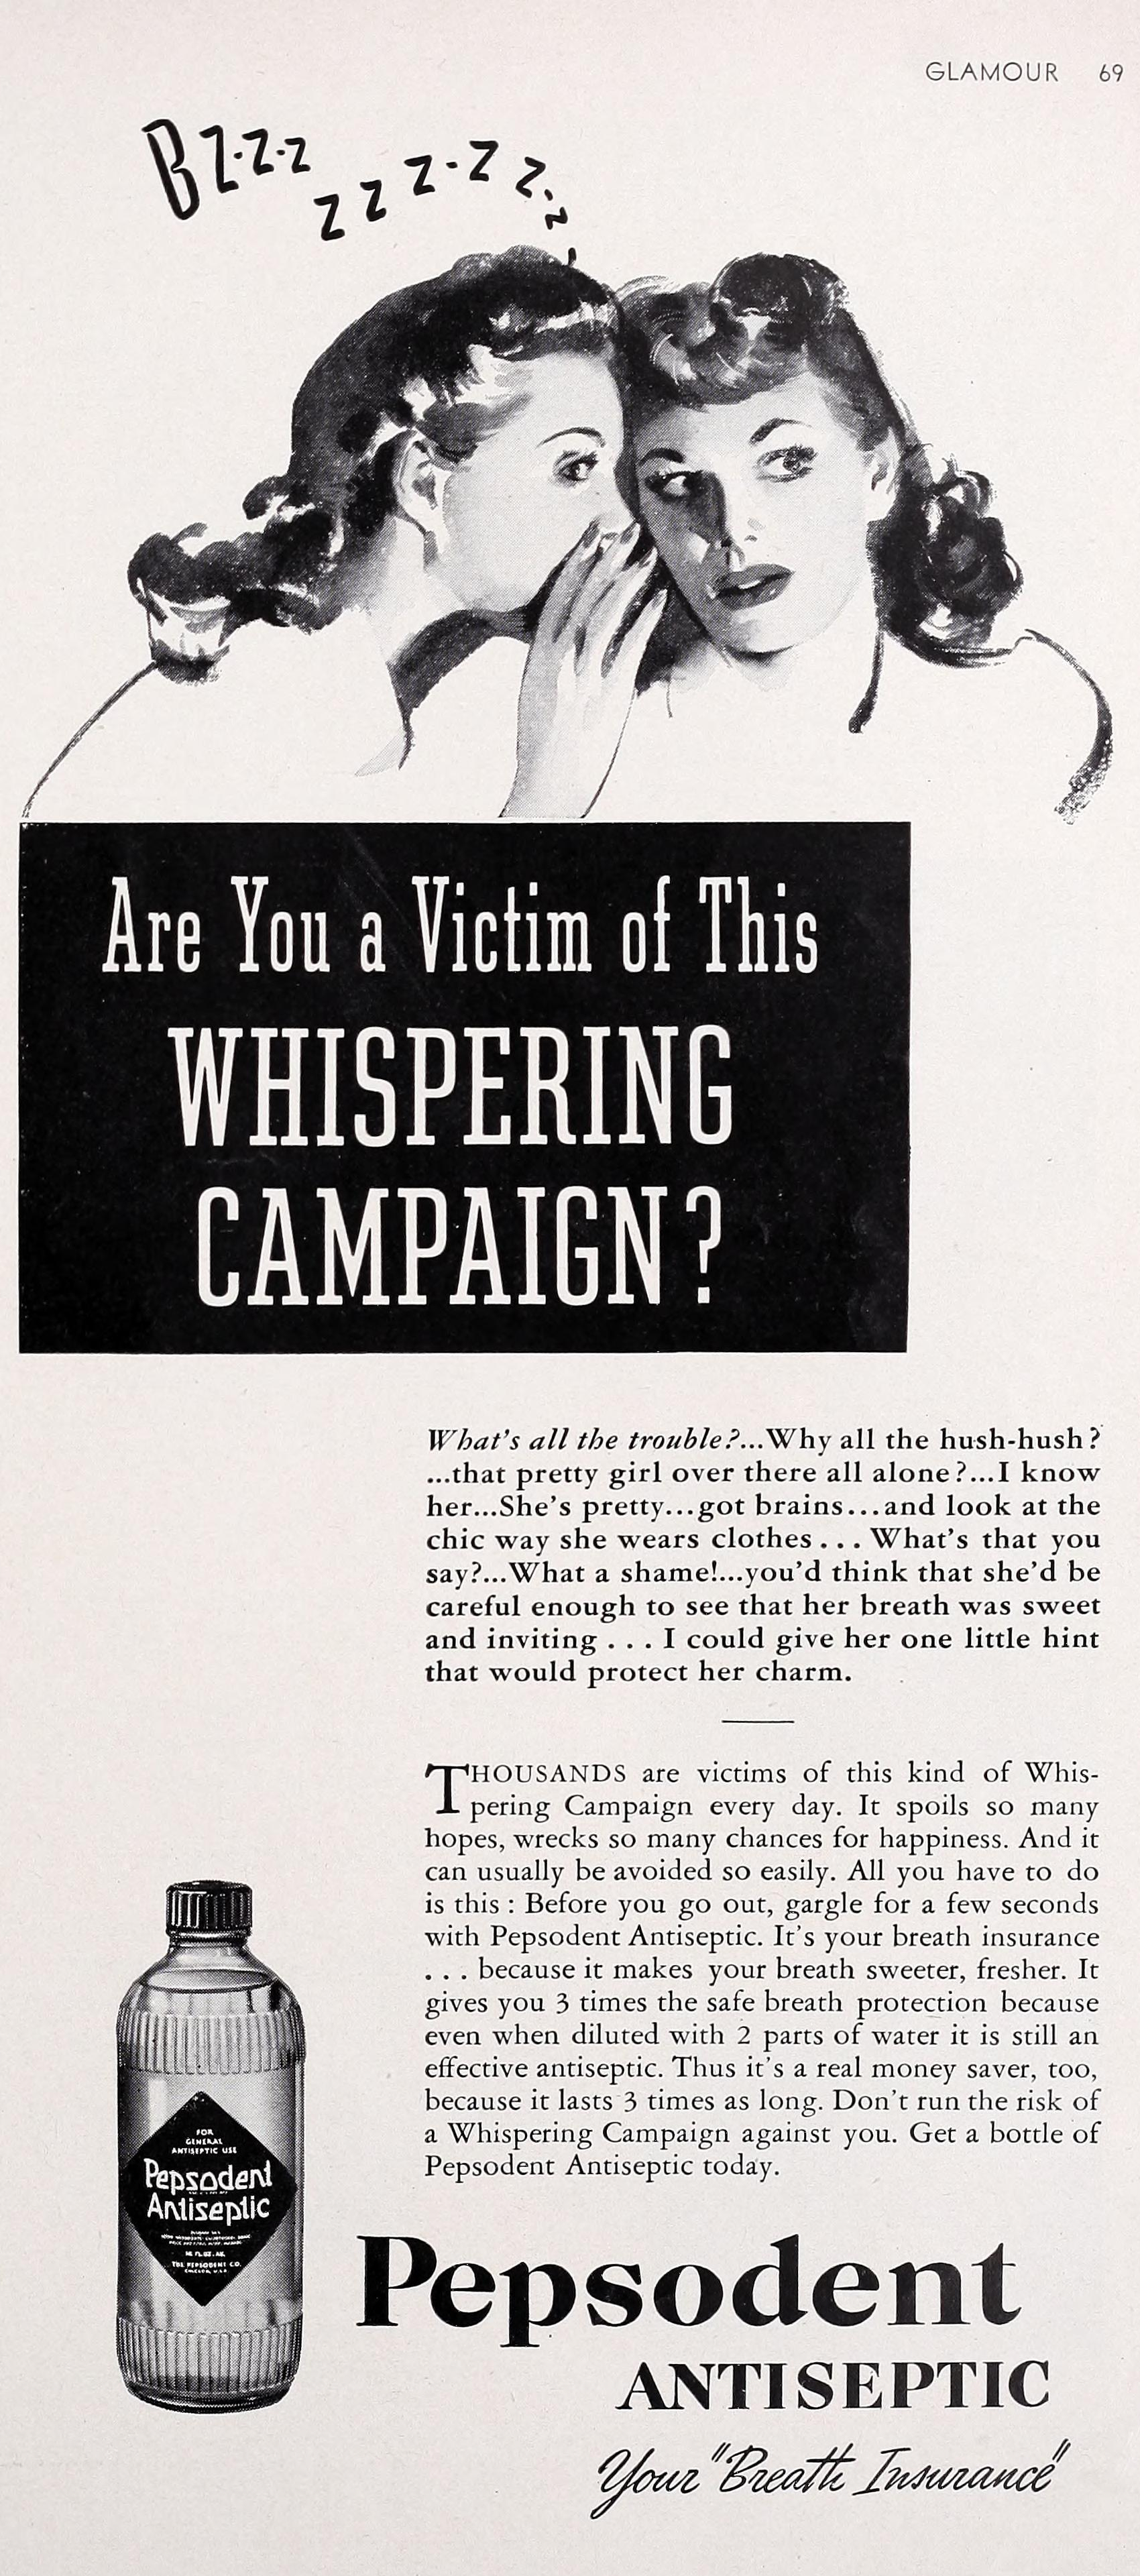 Pepsodent Antiseptic - published in Glamour of Hollywood - March 1941